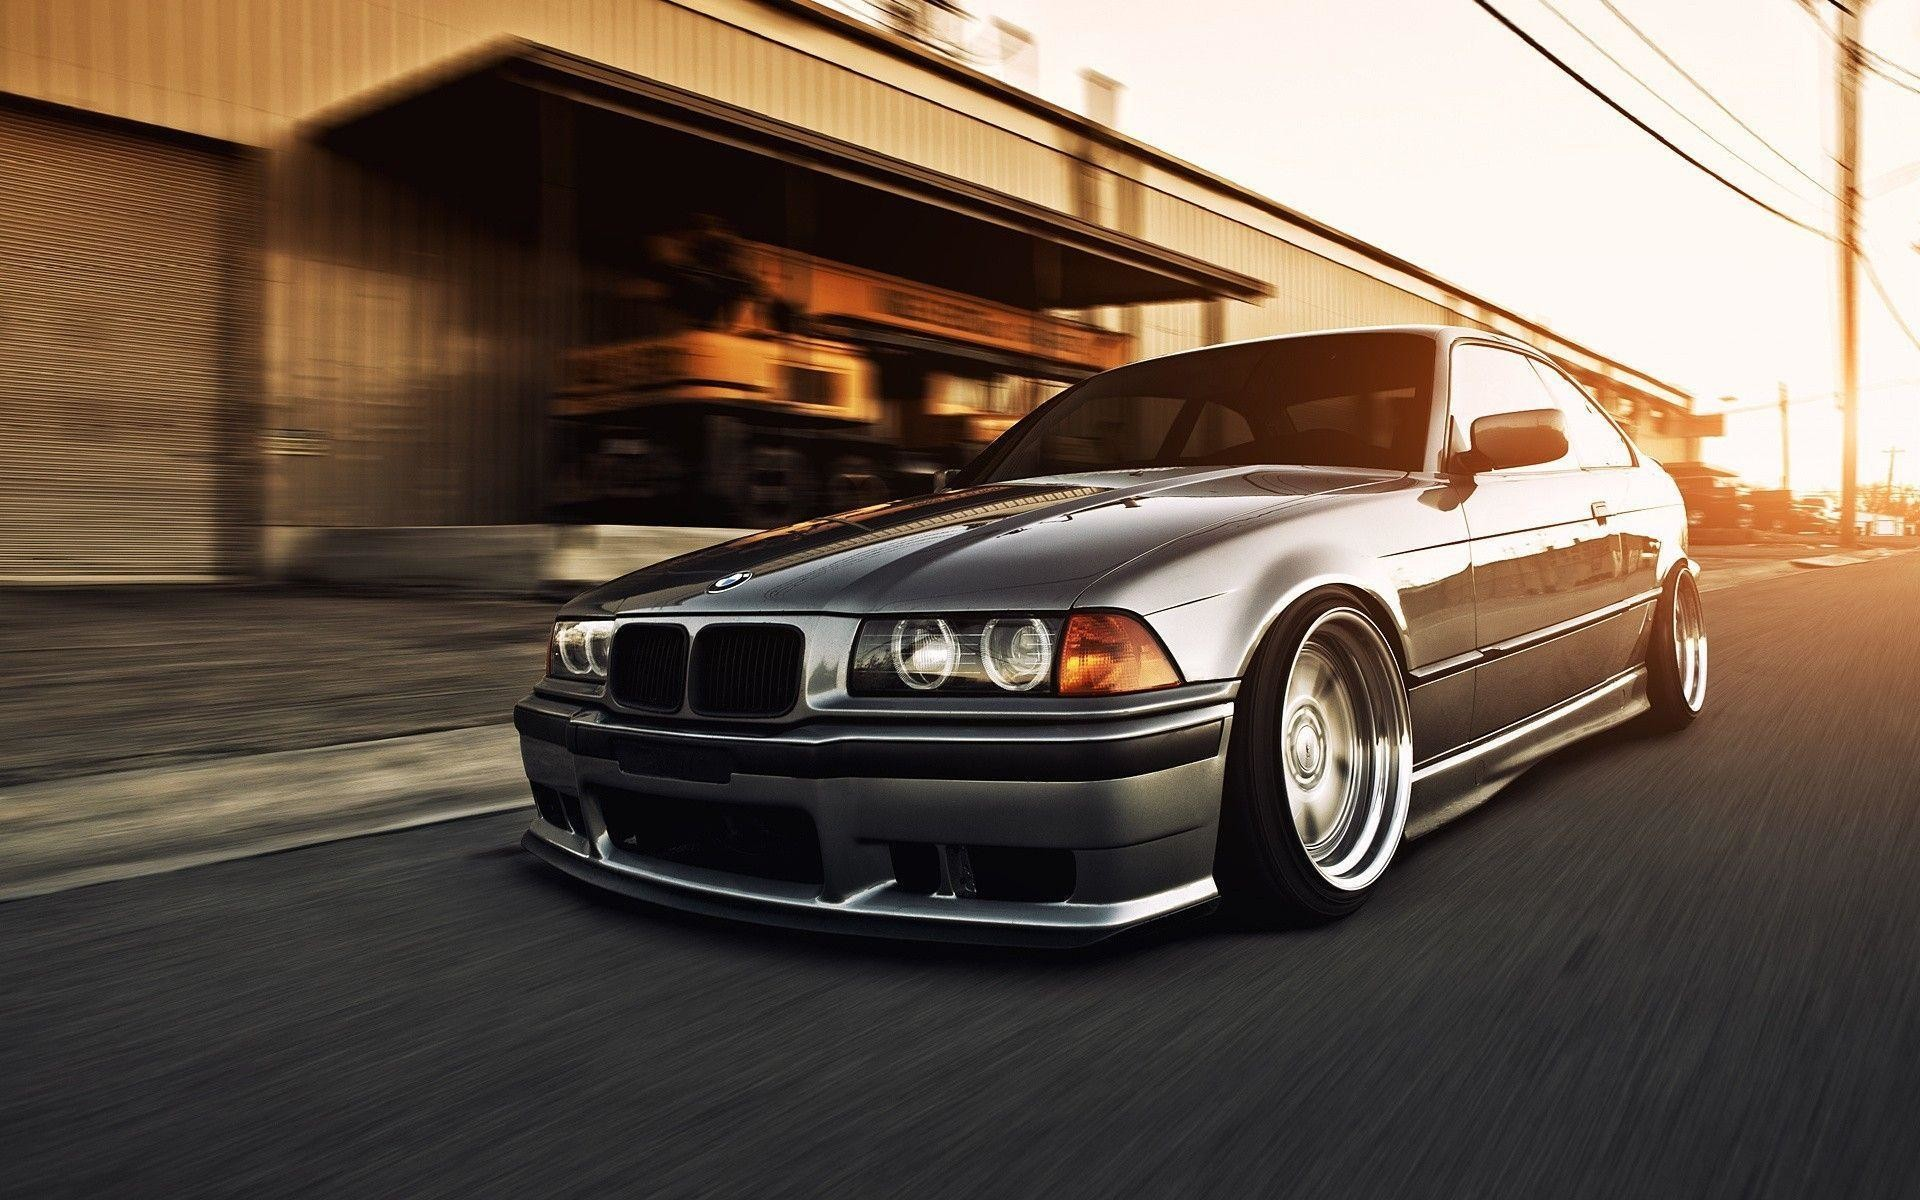 1920x1200 Bmw E36 Wallpapers - Full HD wallpaper search